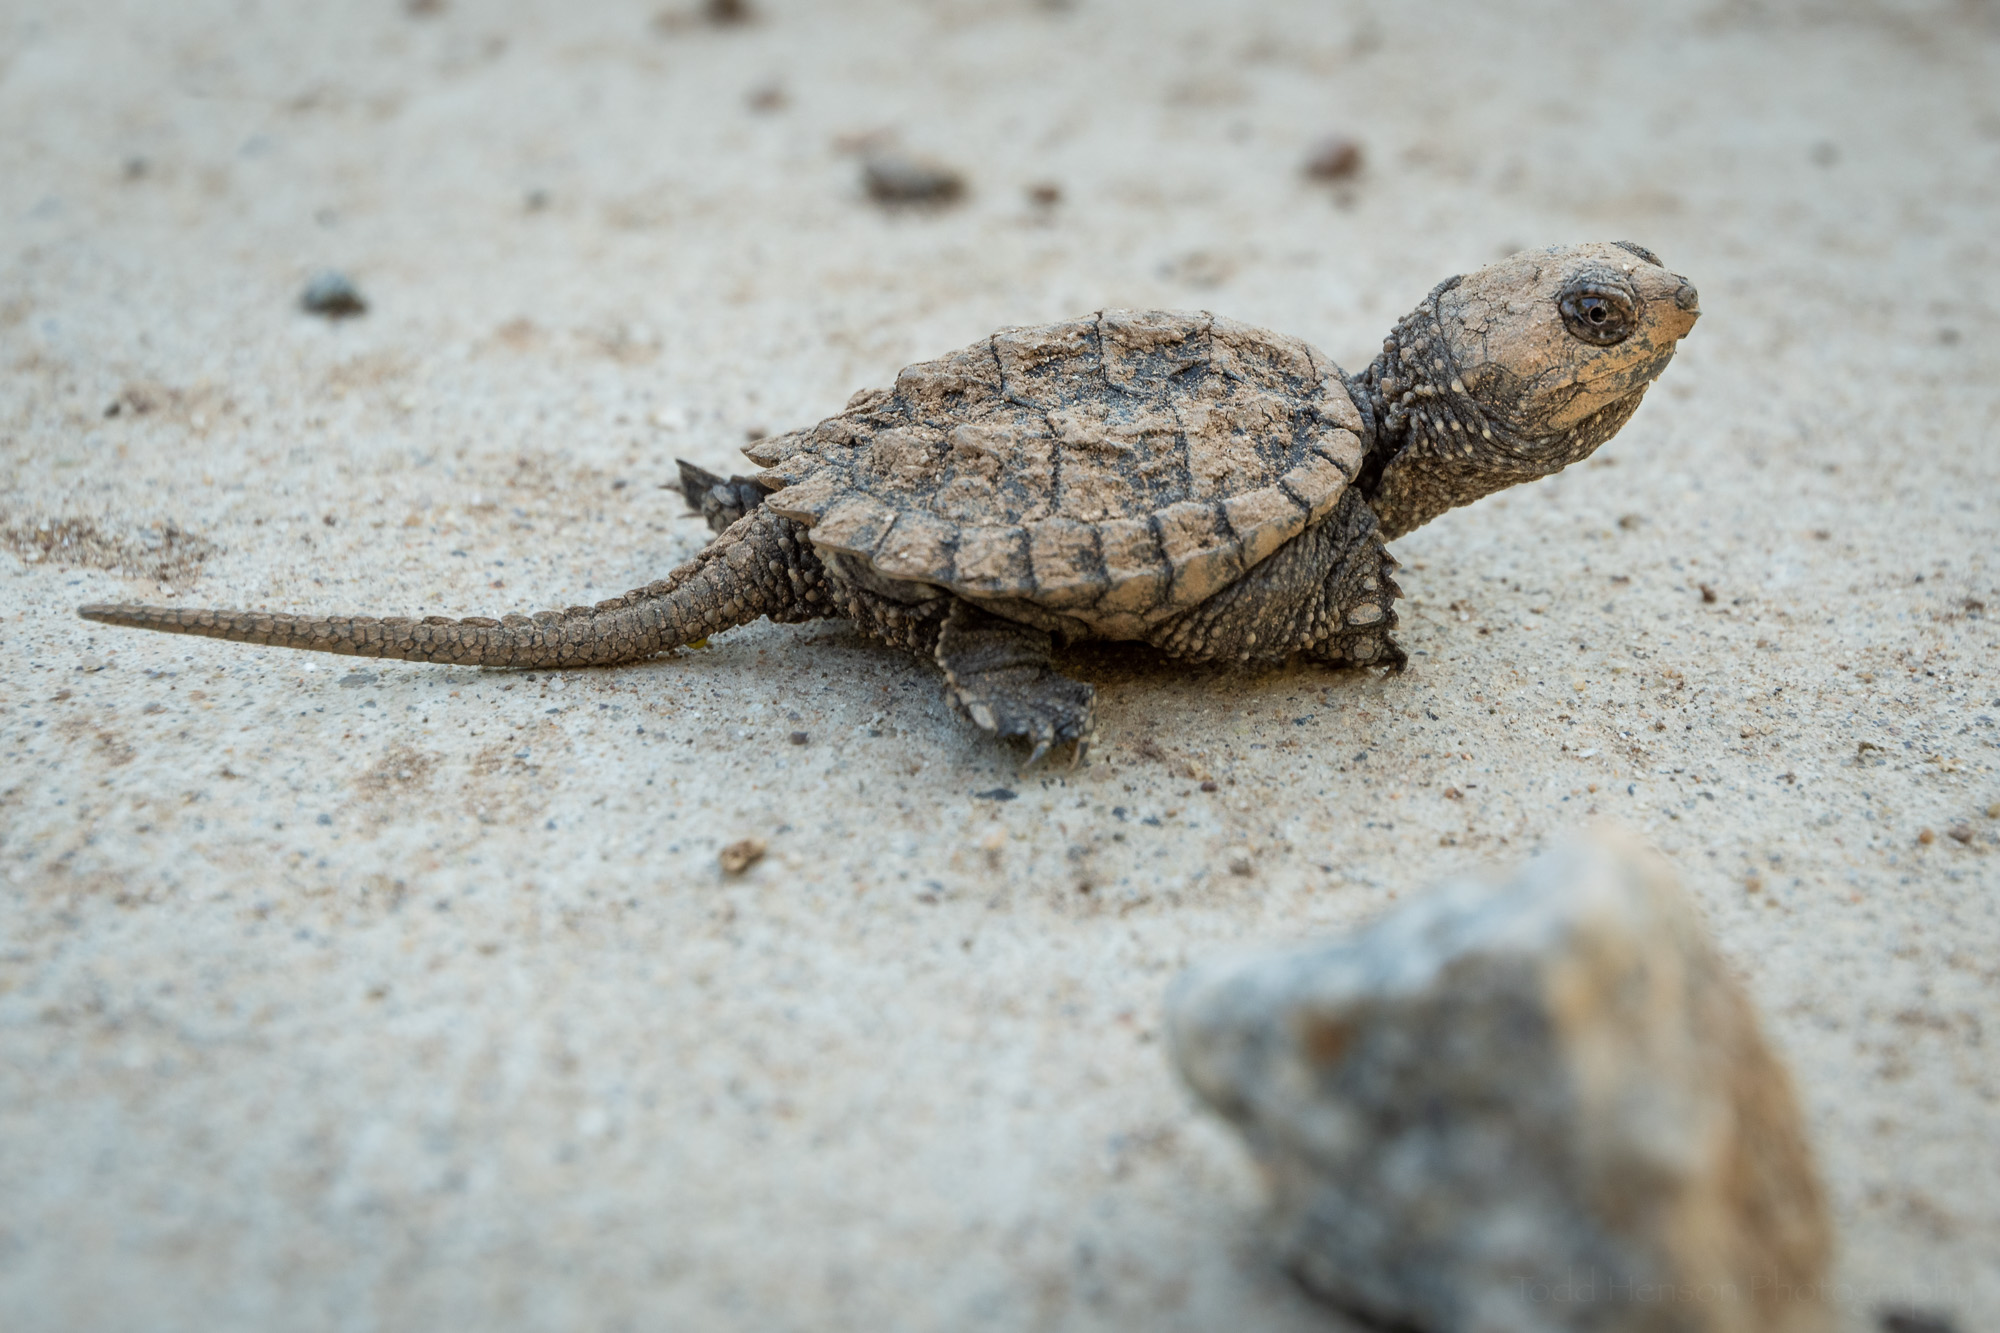 I created my favorite photograph of the Snapping Turtle hatchling after it left the pavement and rested in a more natural environment.